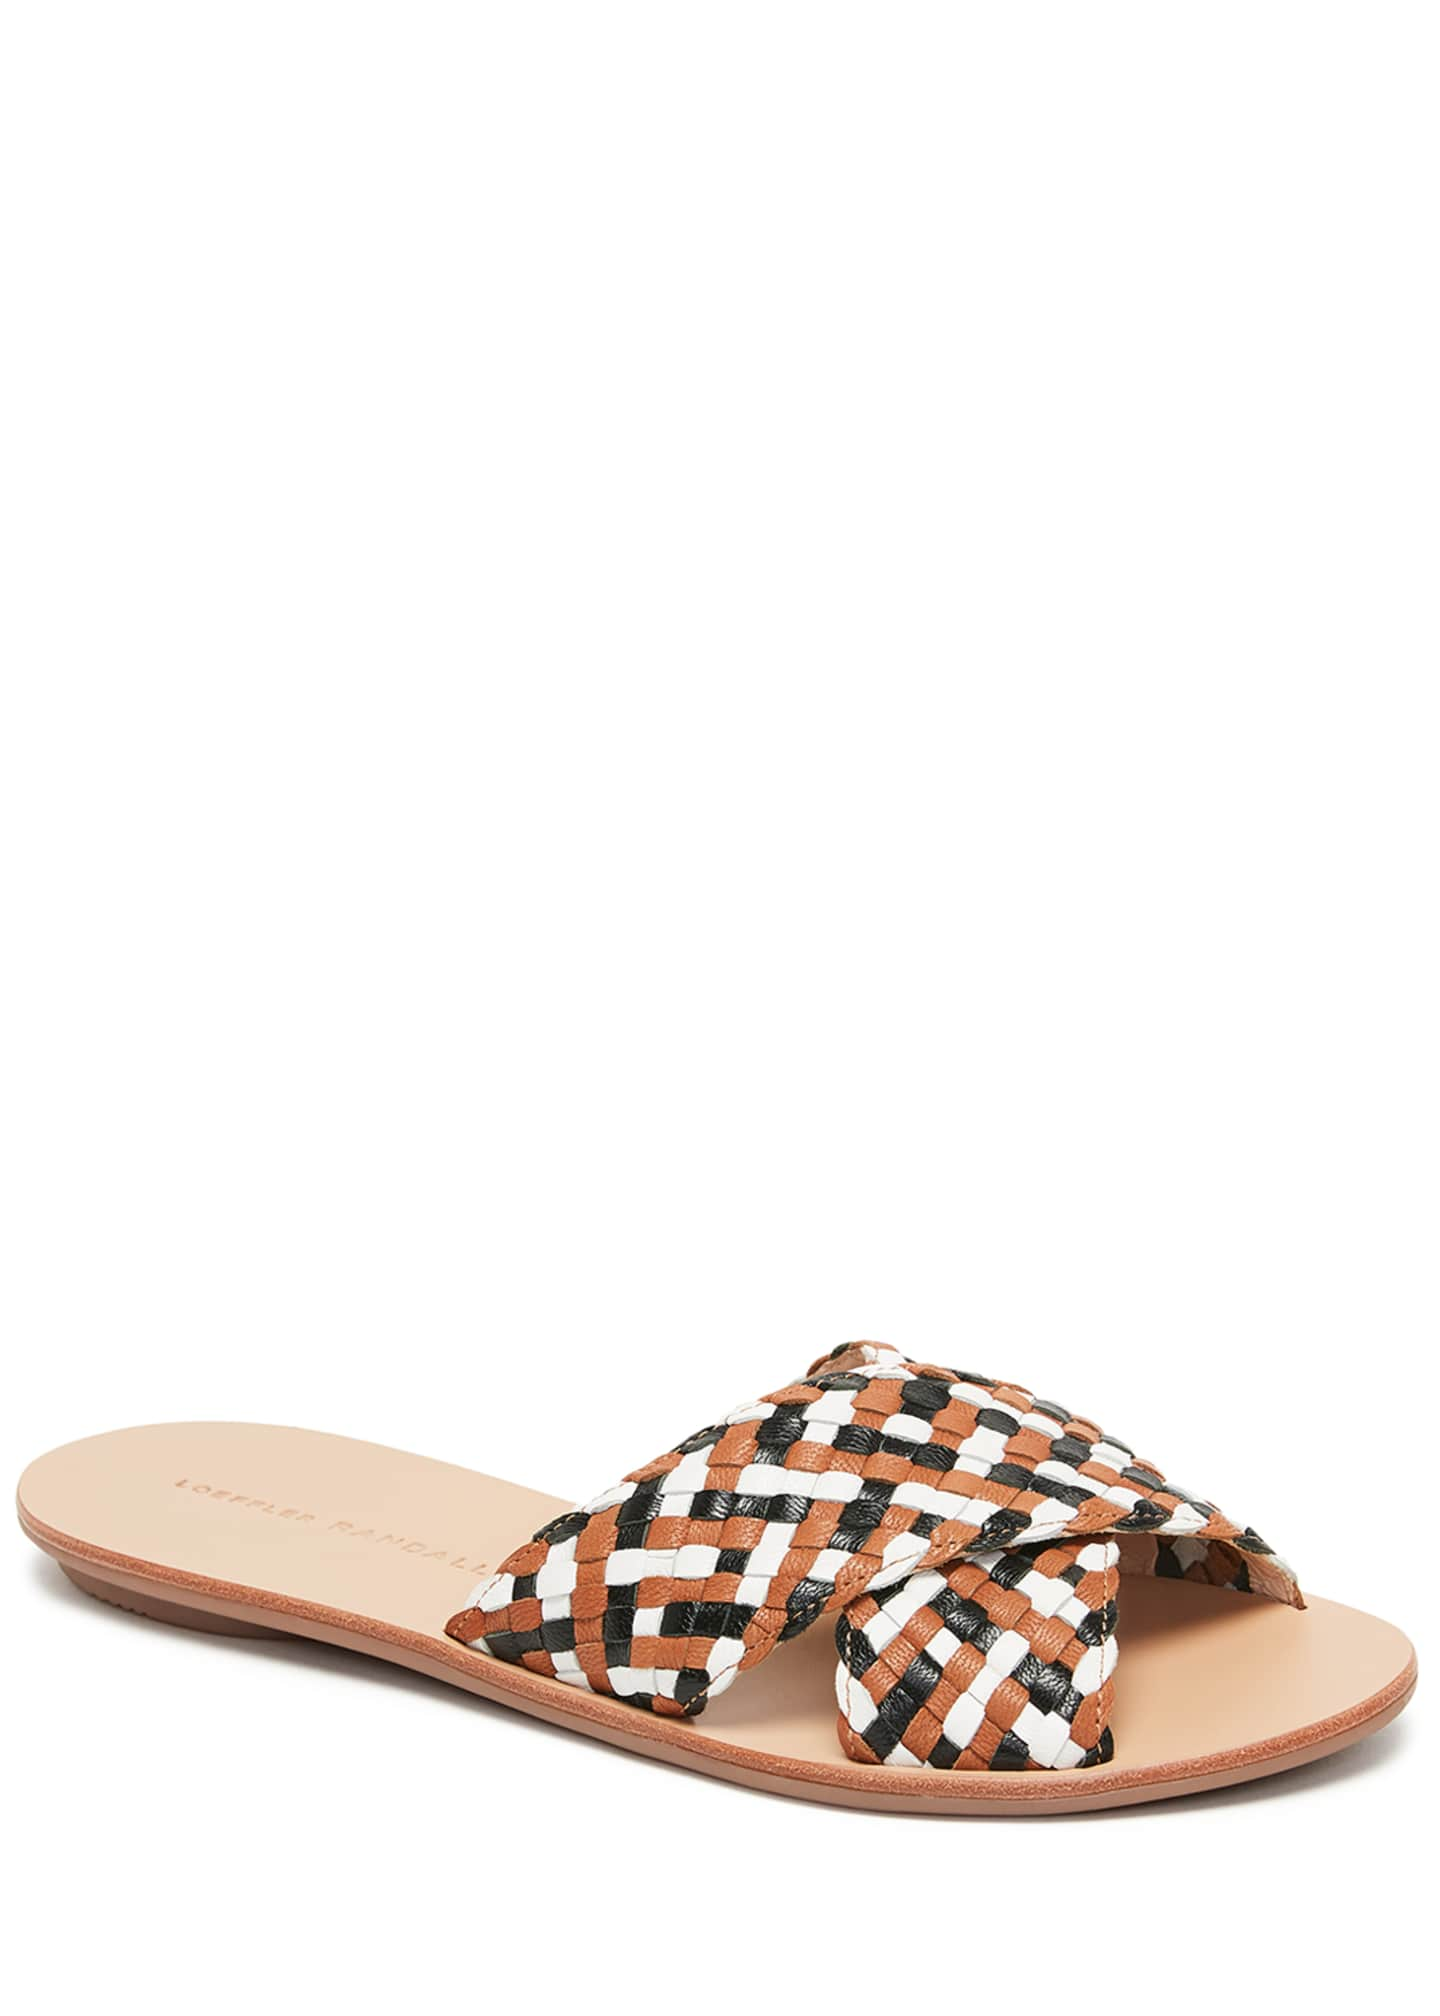 Loeffler Randall Claudie Woven Leather Slide Sandals